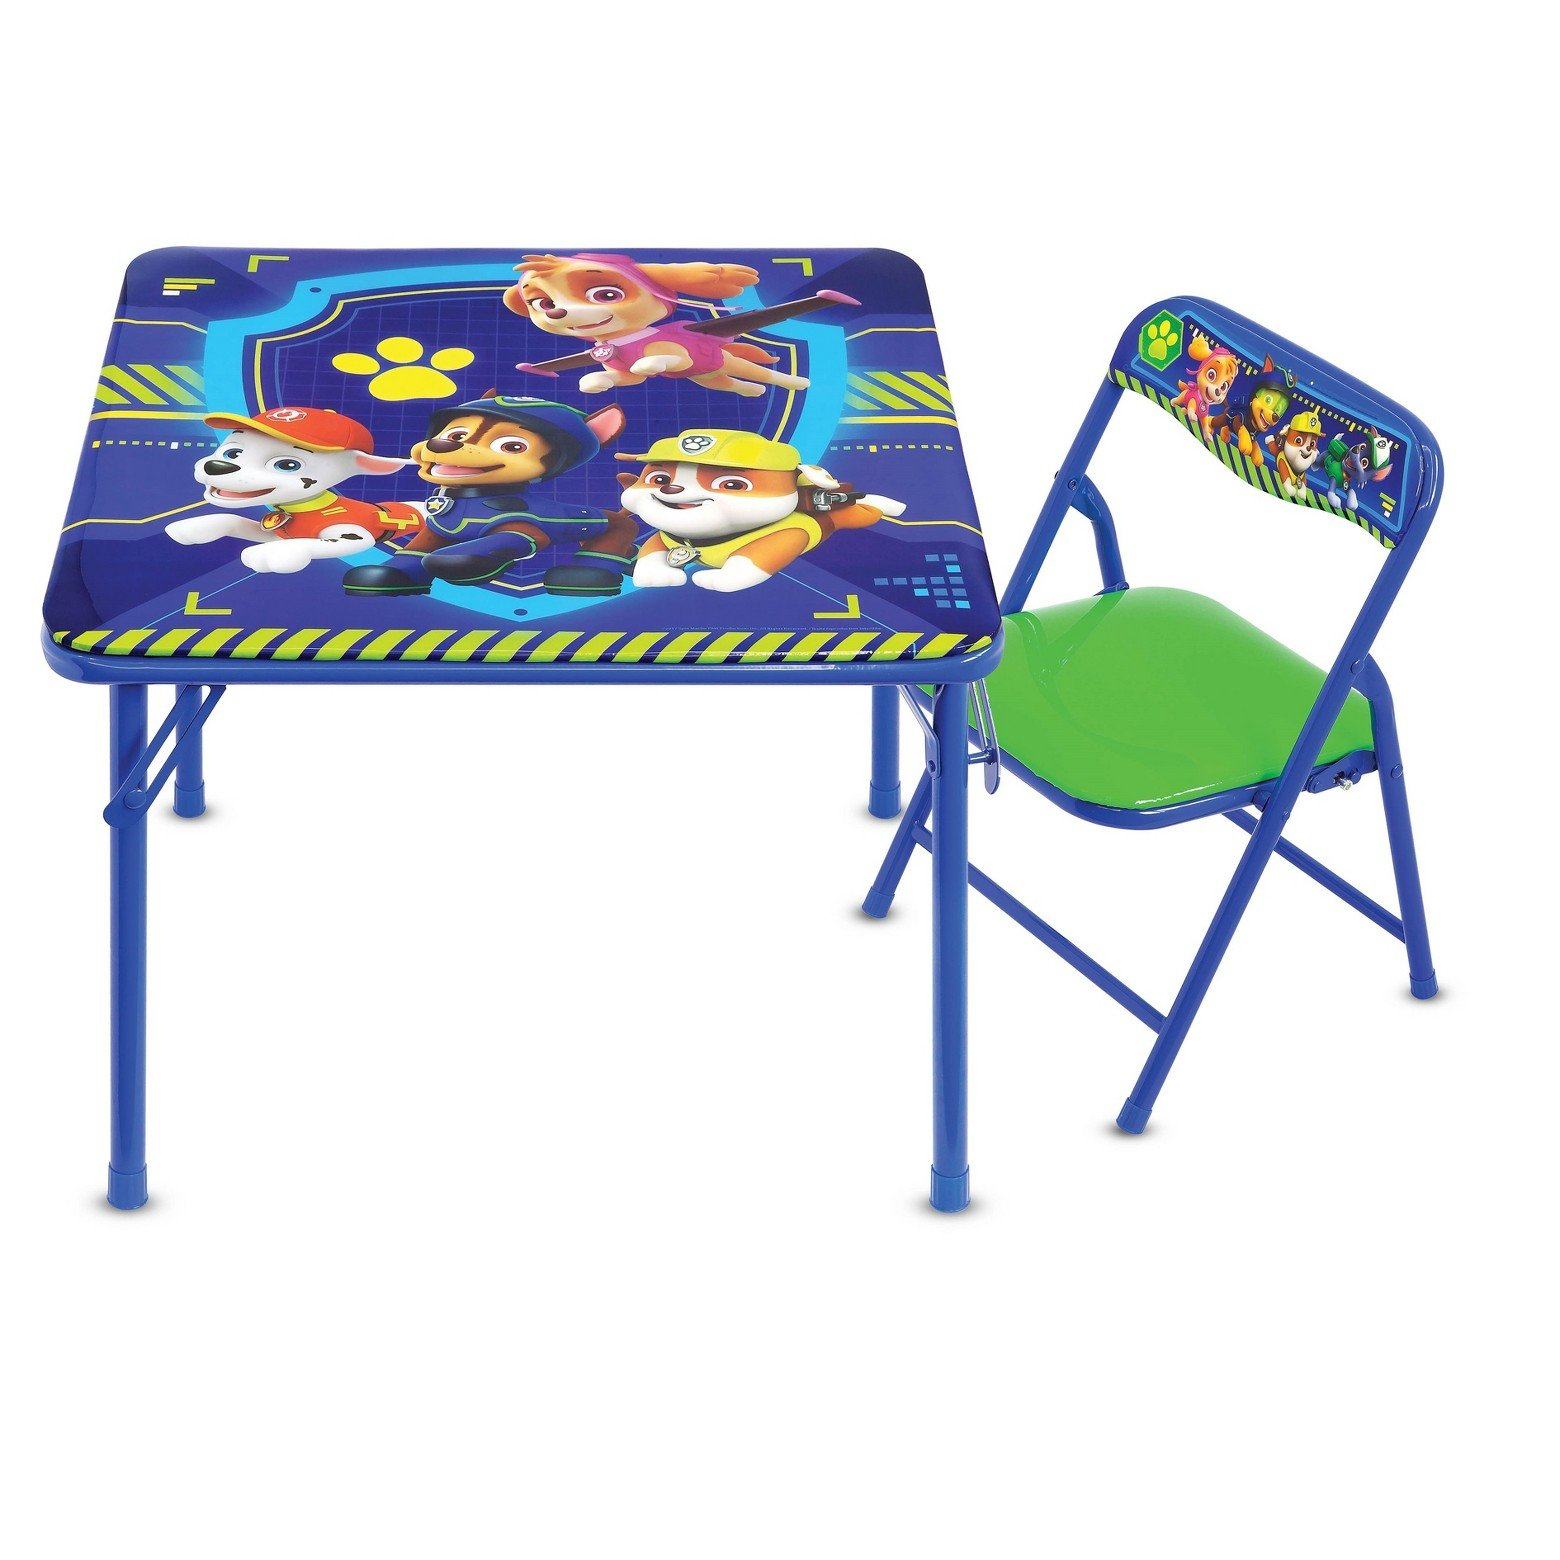 Paw Patrol Junior Table & Chair Set, Folding Table & Padded Chair by Paw Patrol